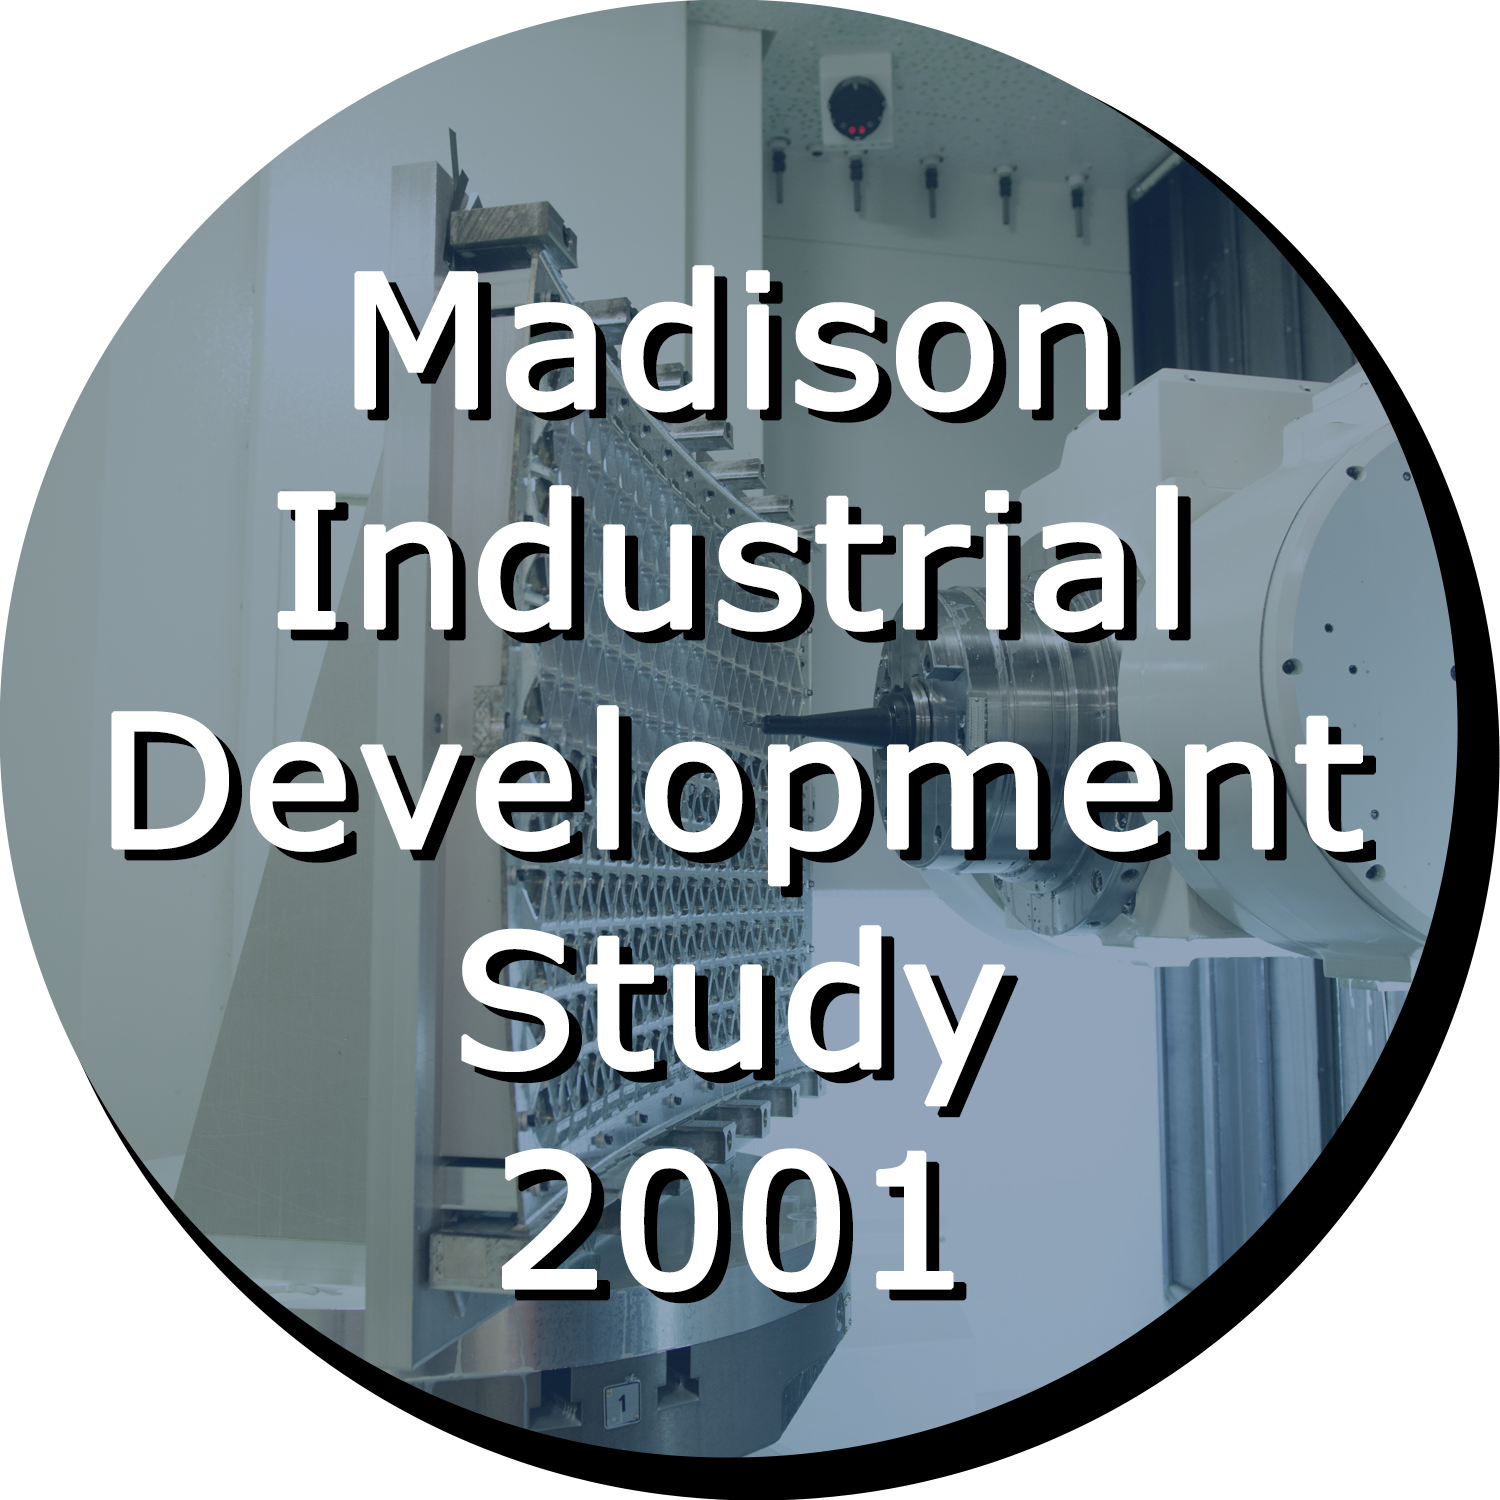 Madison Industrial Development Study 2001 Button